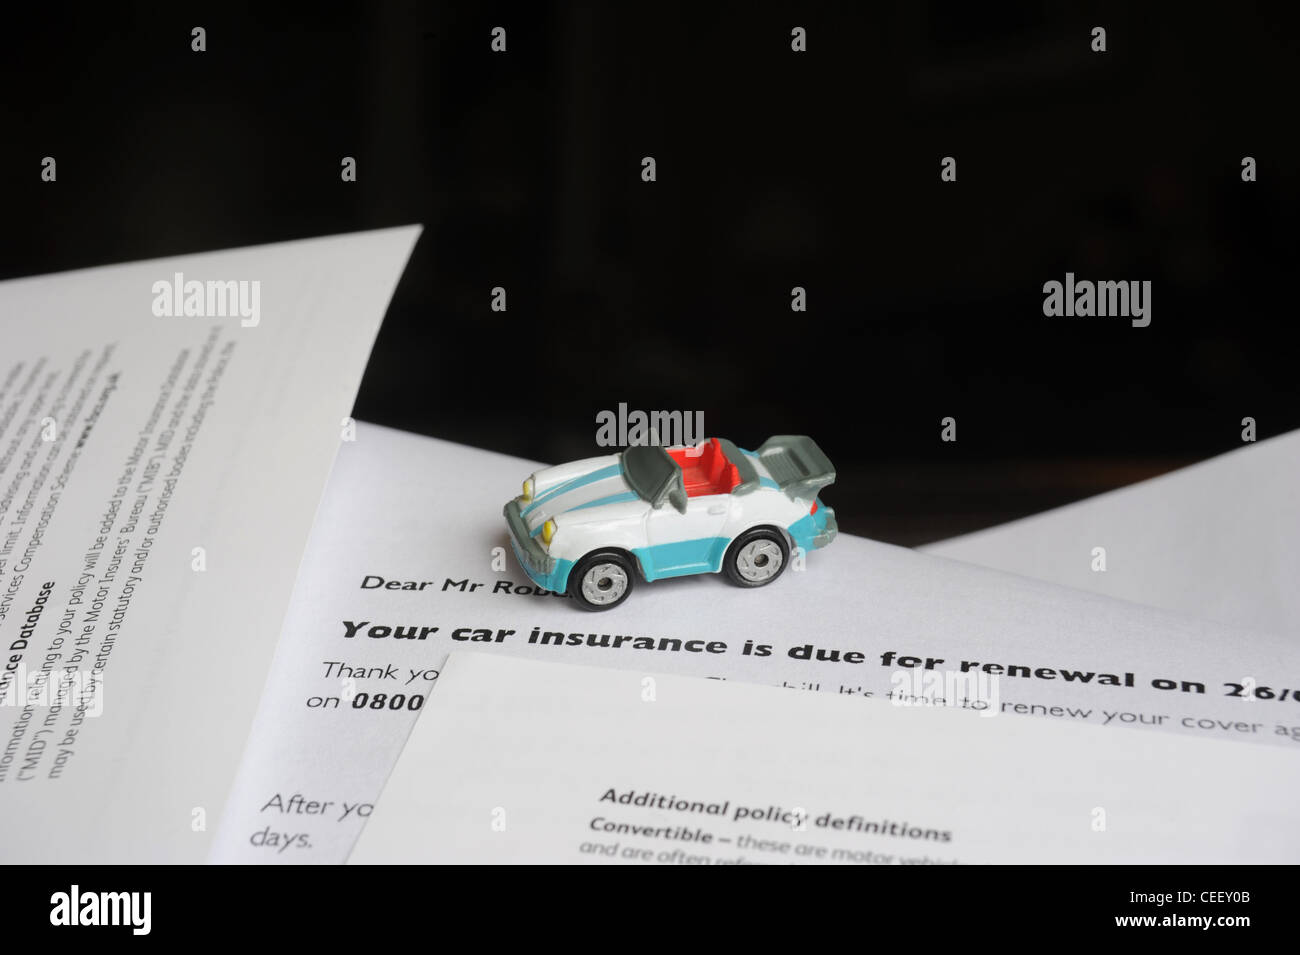 MODEL CAR WITH MOTOR INSURANCE RENEWAL LETTER RE MOTORING INSURANCE COSTS REPAIRS ACCIDENTS RUNNING HOUSEHOLD BILLS - Stock Image